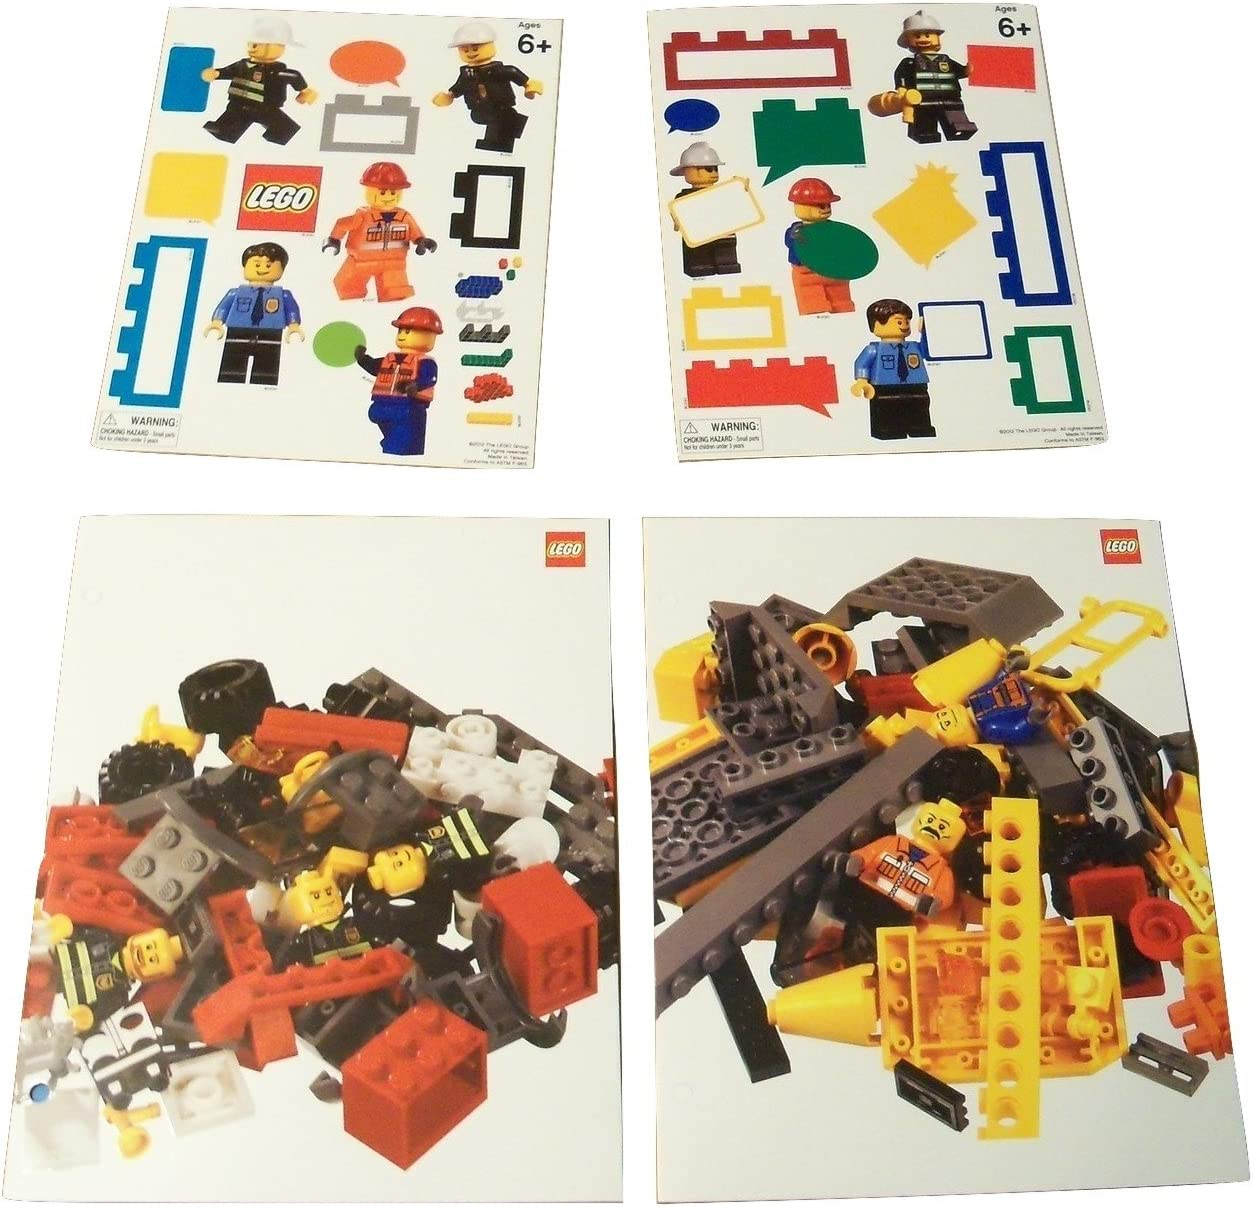 LEGO Two Pocket Folders by Mead ~ Build to Your Hearts Content (Set of 2 Folders and 2 Sticker Sheets)